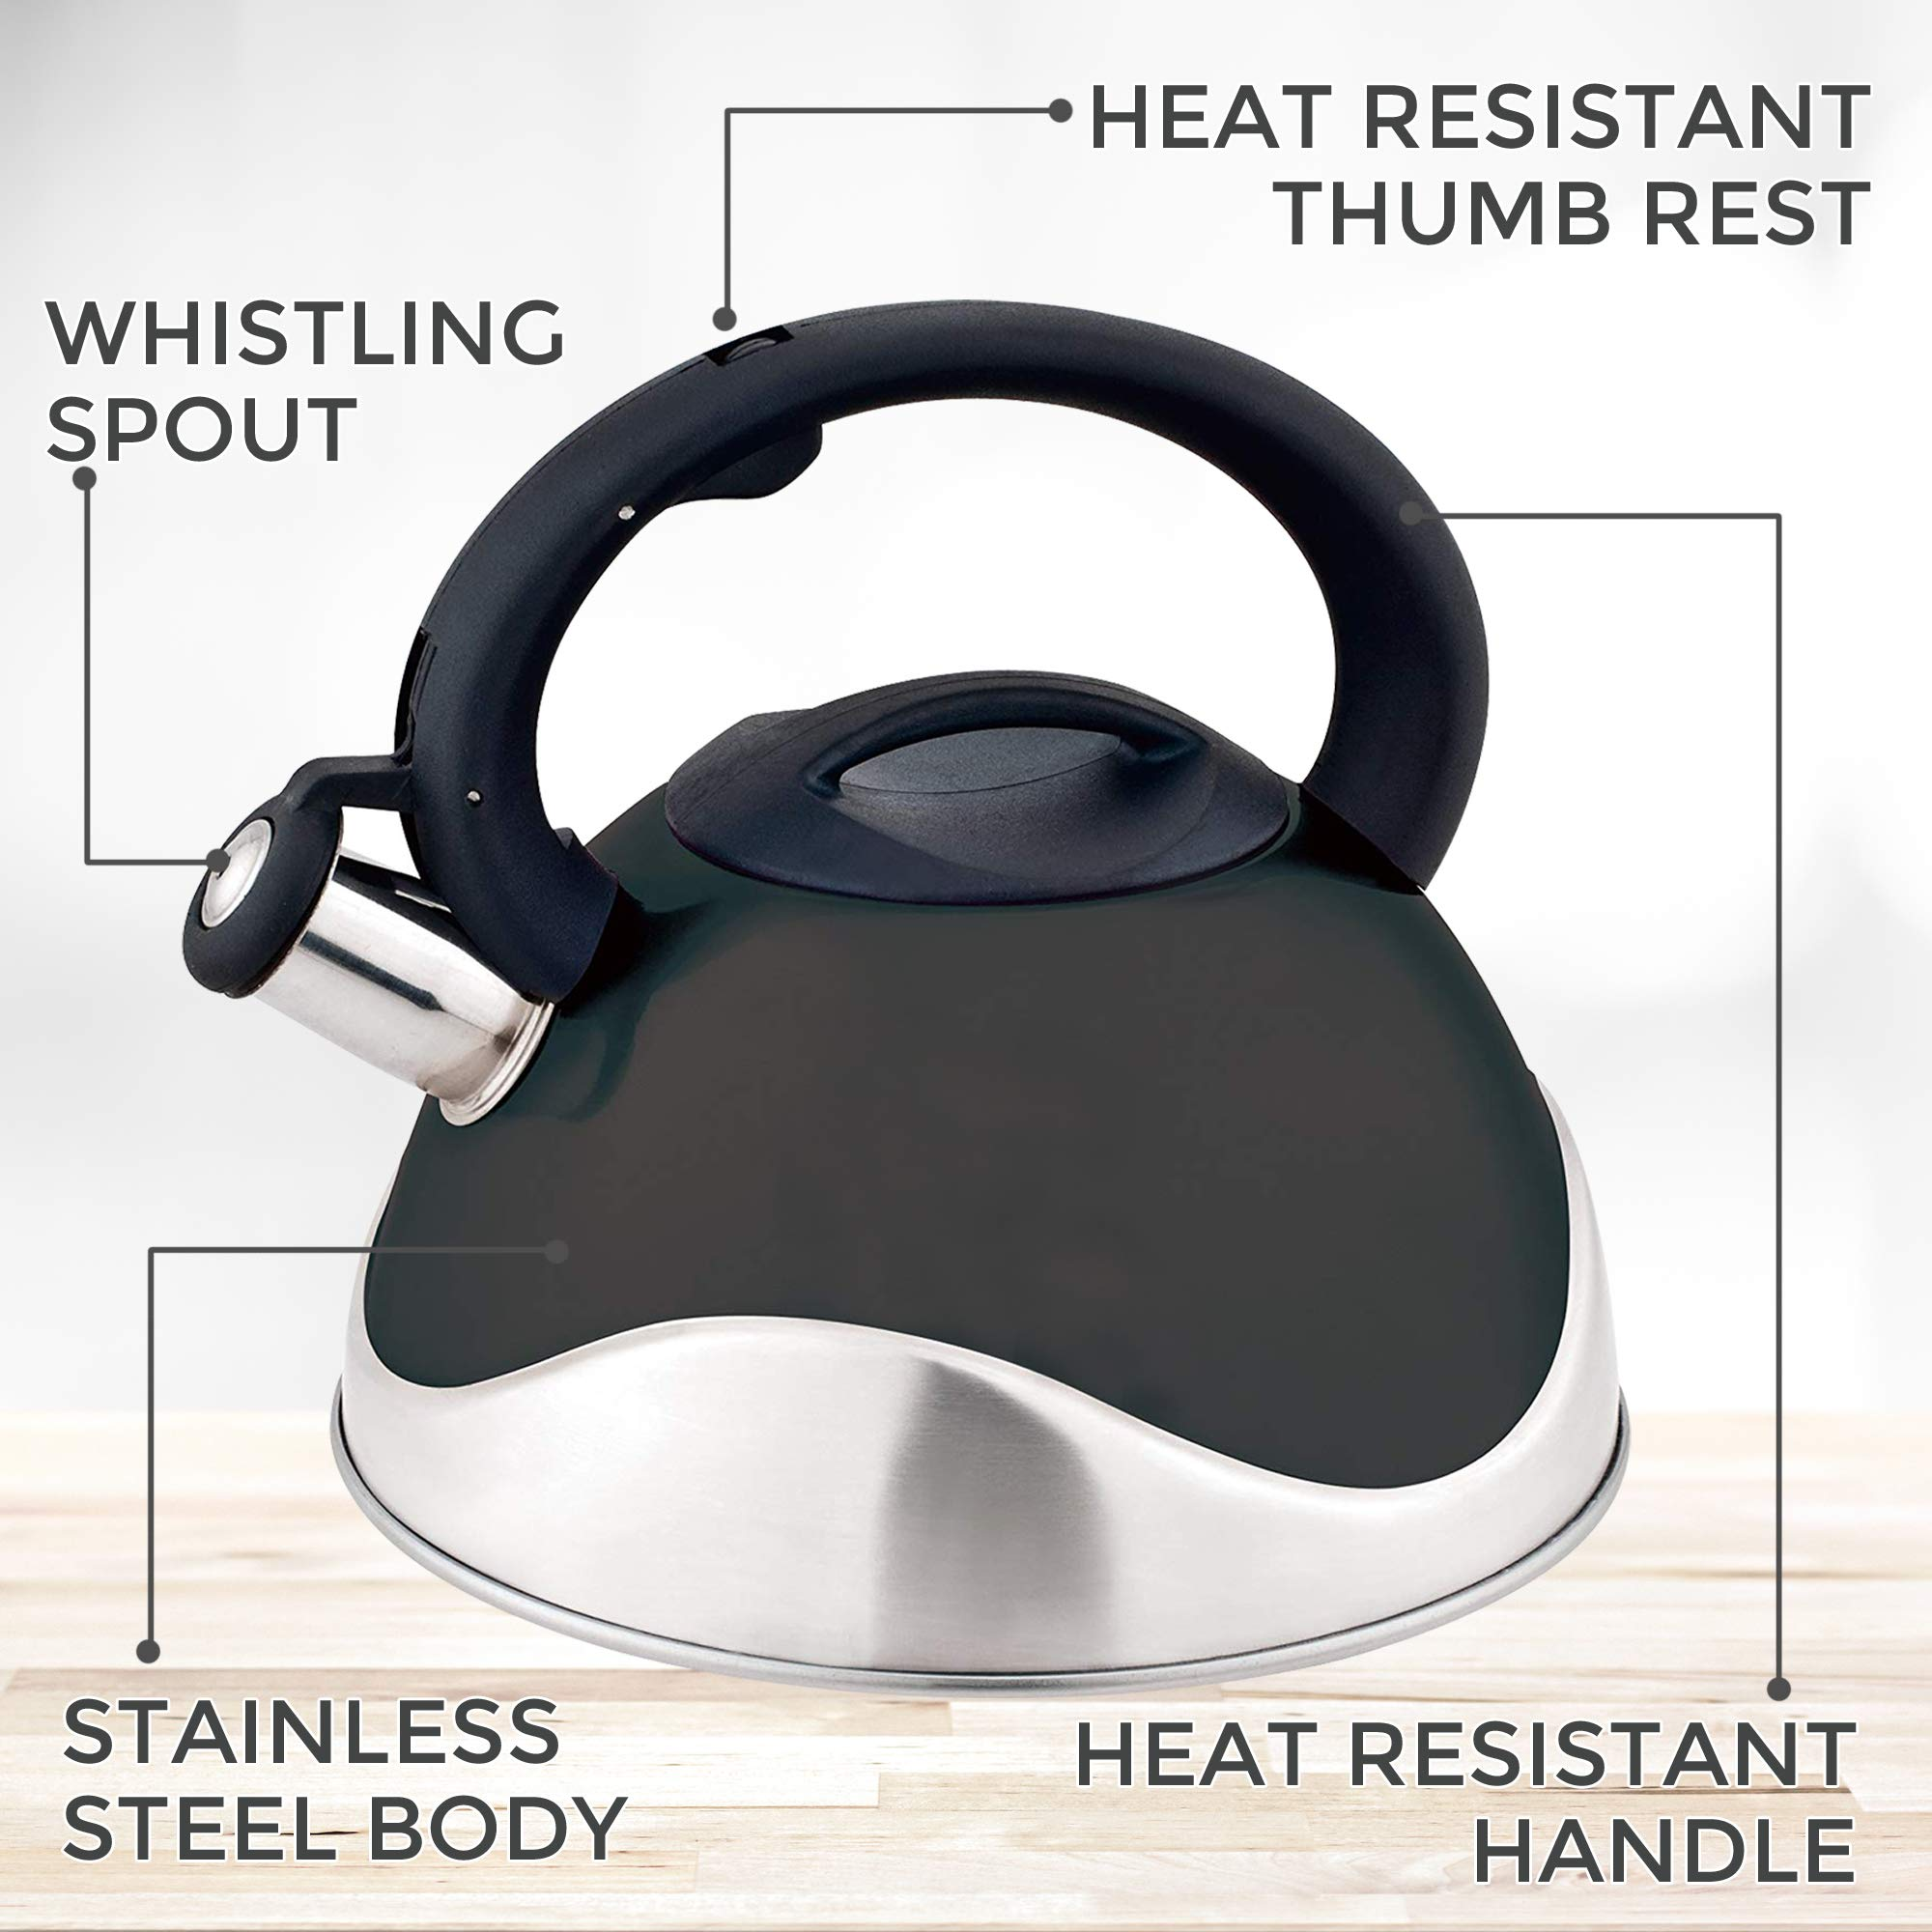 Whistling Stainless Steel Food Grade Black Tea Kettle with Soft Grip Anti-Hot Handle Anti-Rust 13 Cup Teapot by American Dream- Stovetop Suitable  for All Heat Sources Capsuled Bottom Teakettle by American Dream (Image #3)